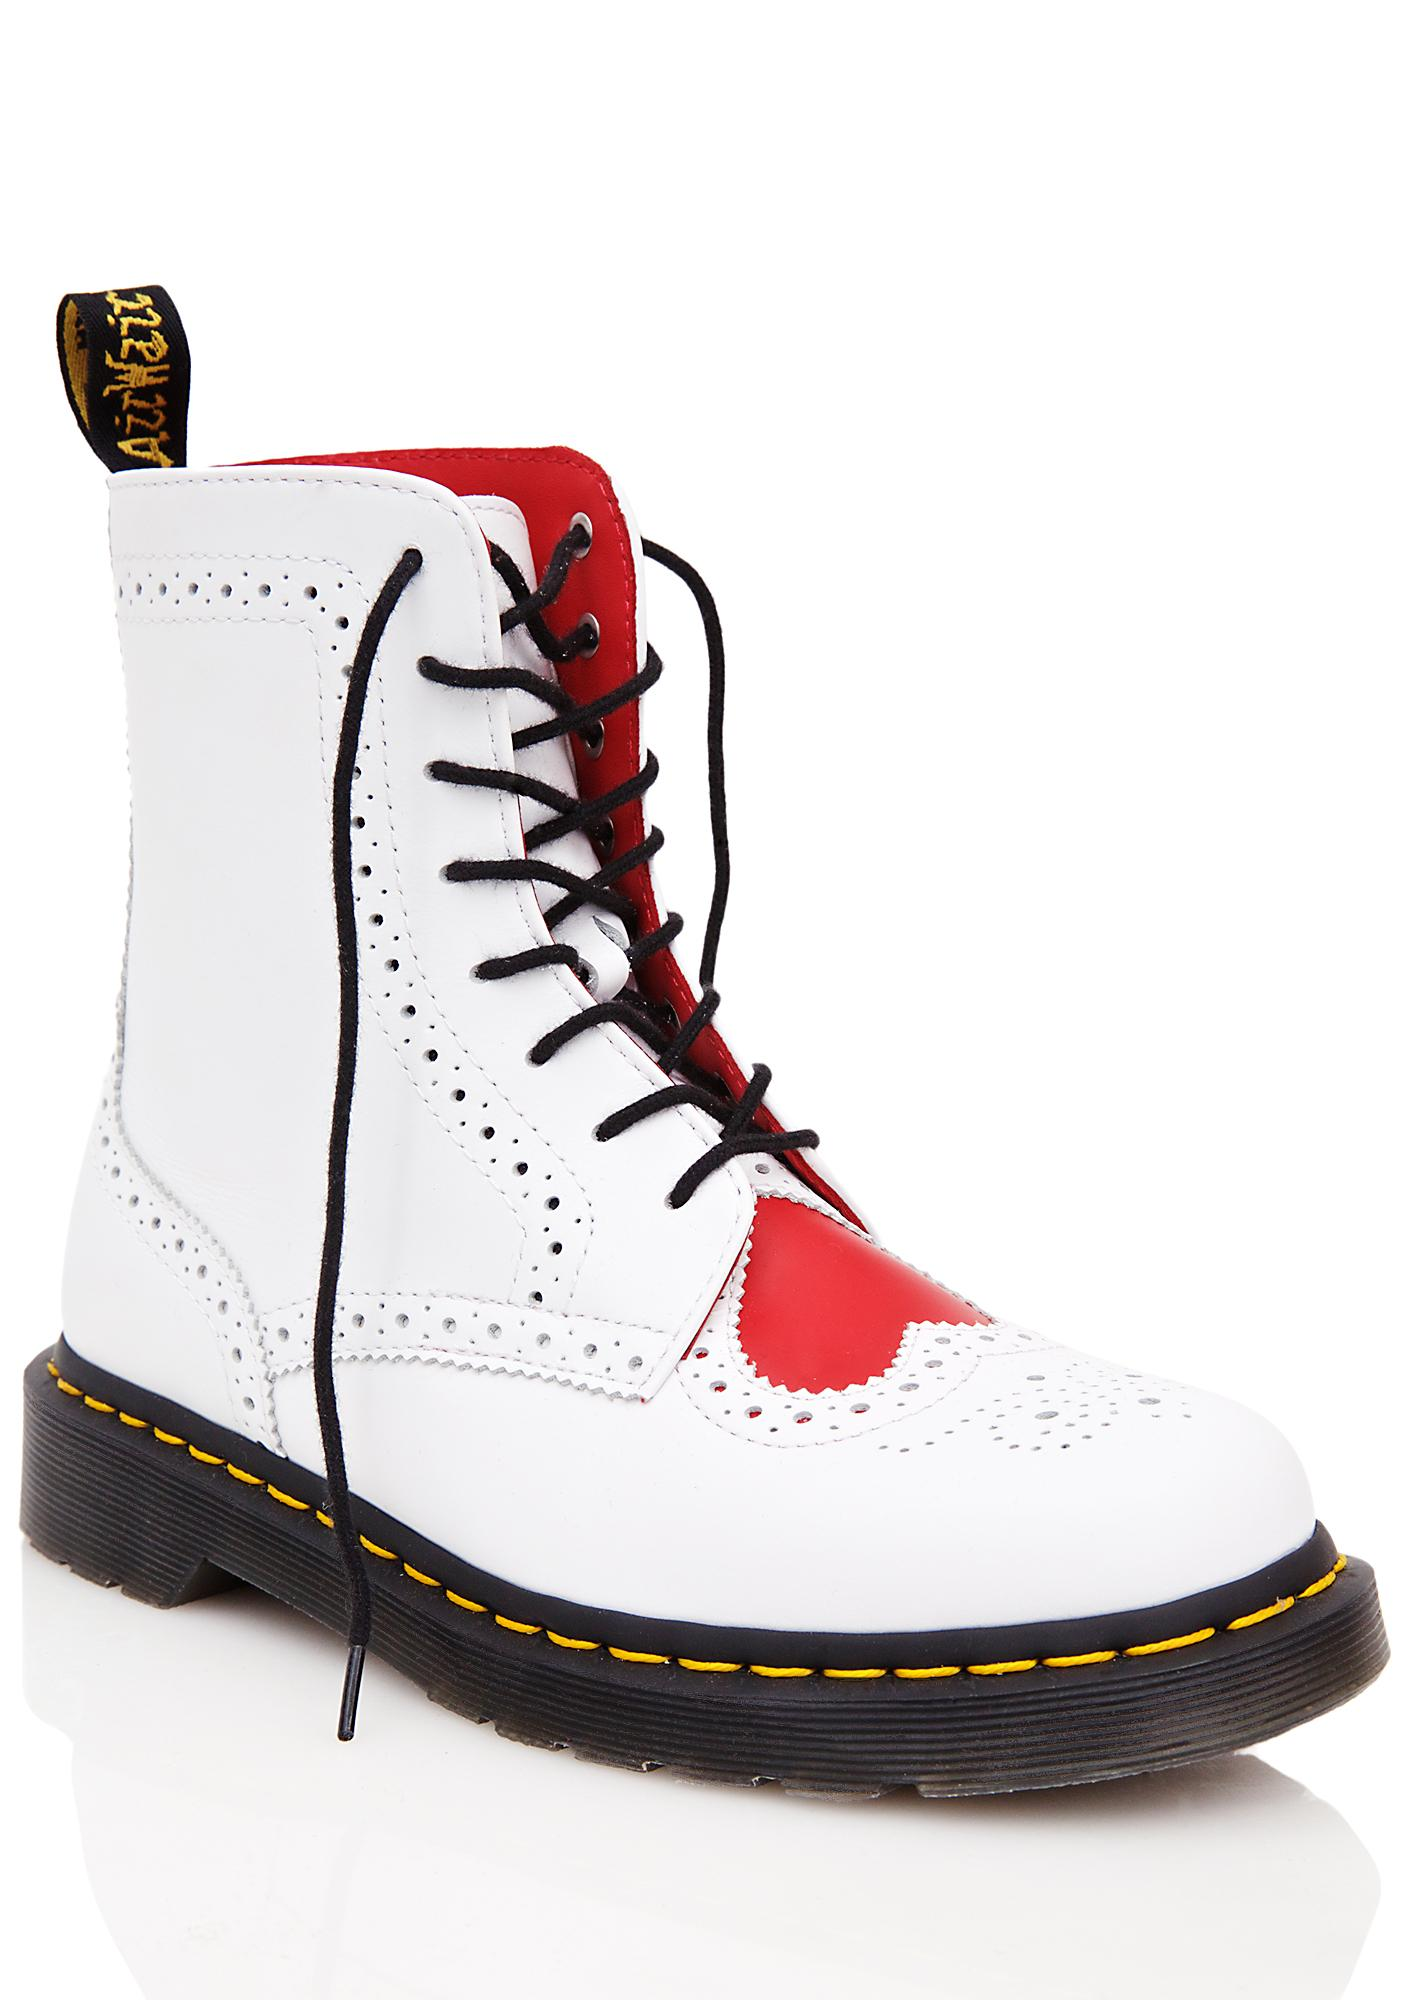 Dr. Martens Bentley Heart Brouge 8 Eye Boots